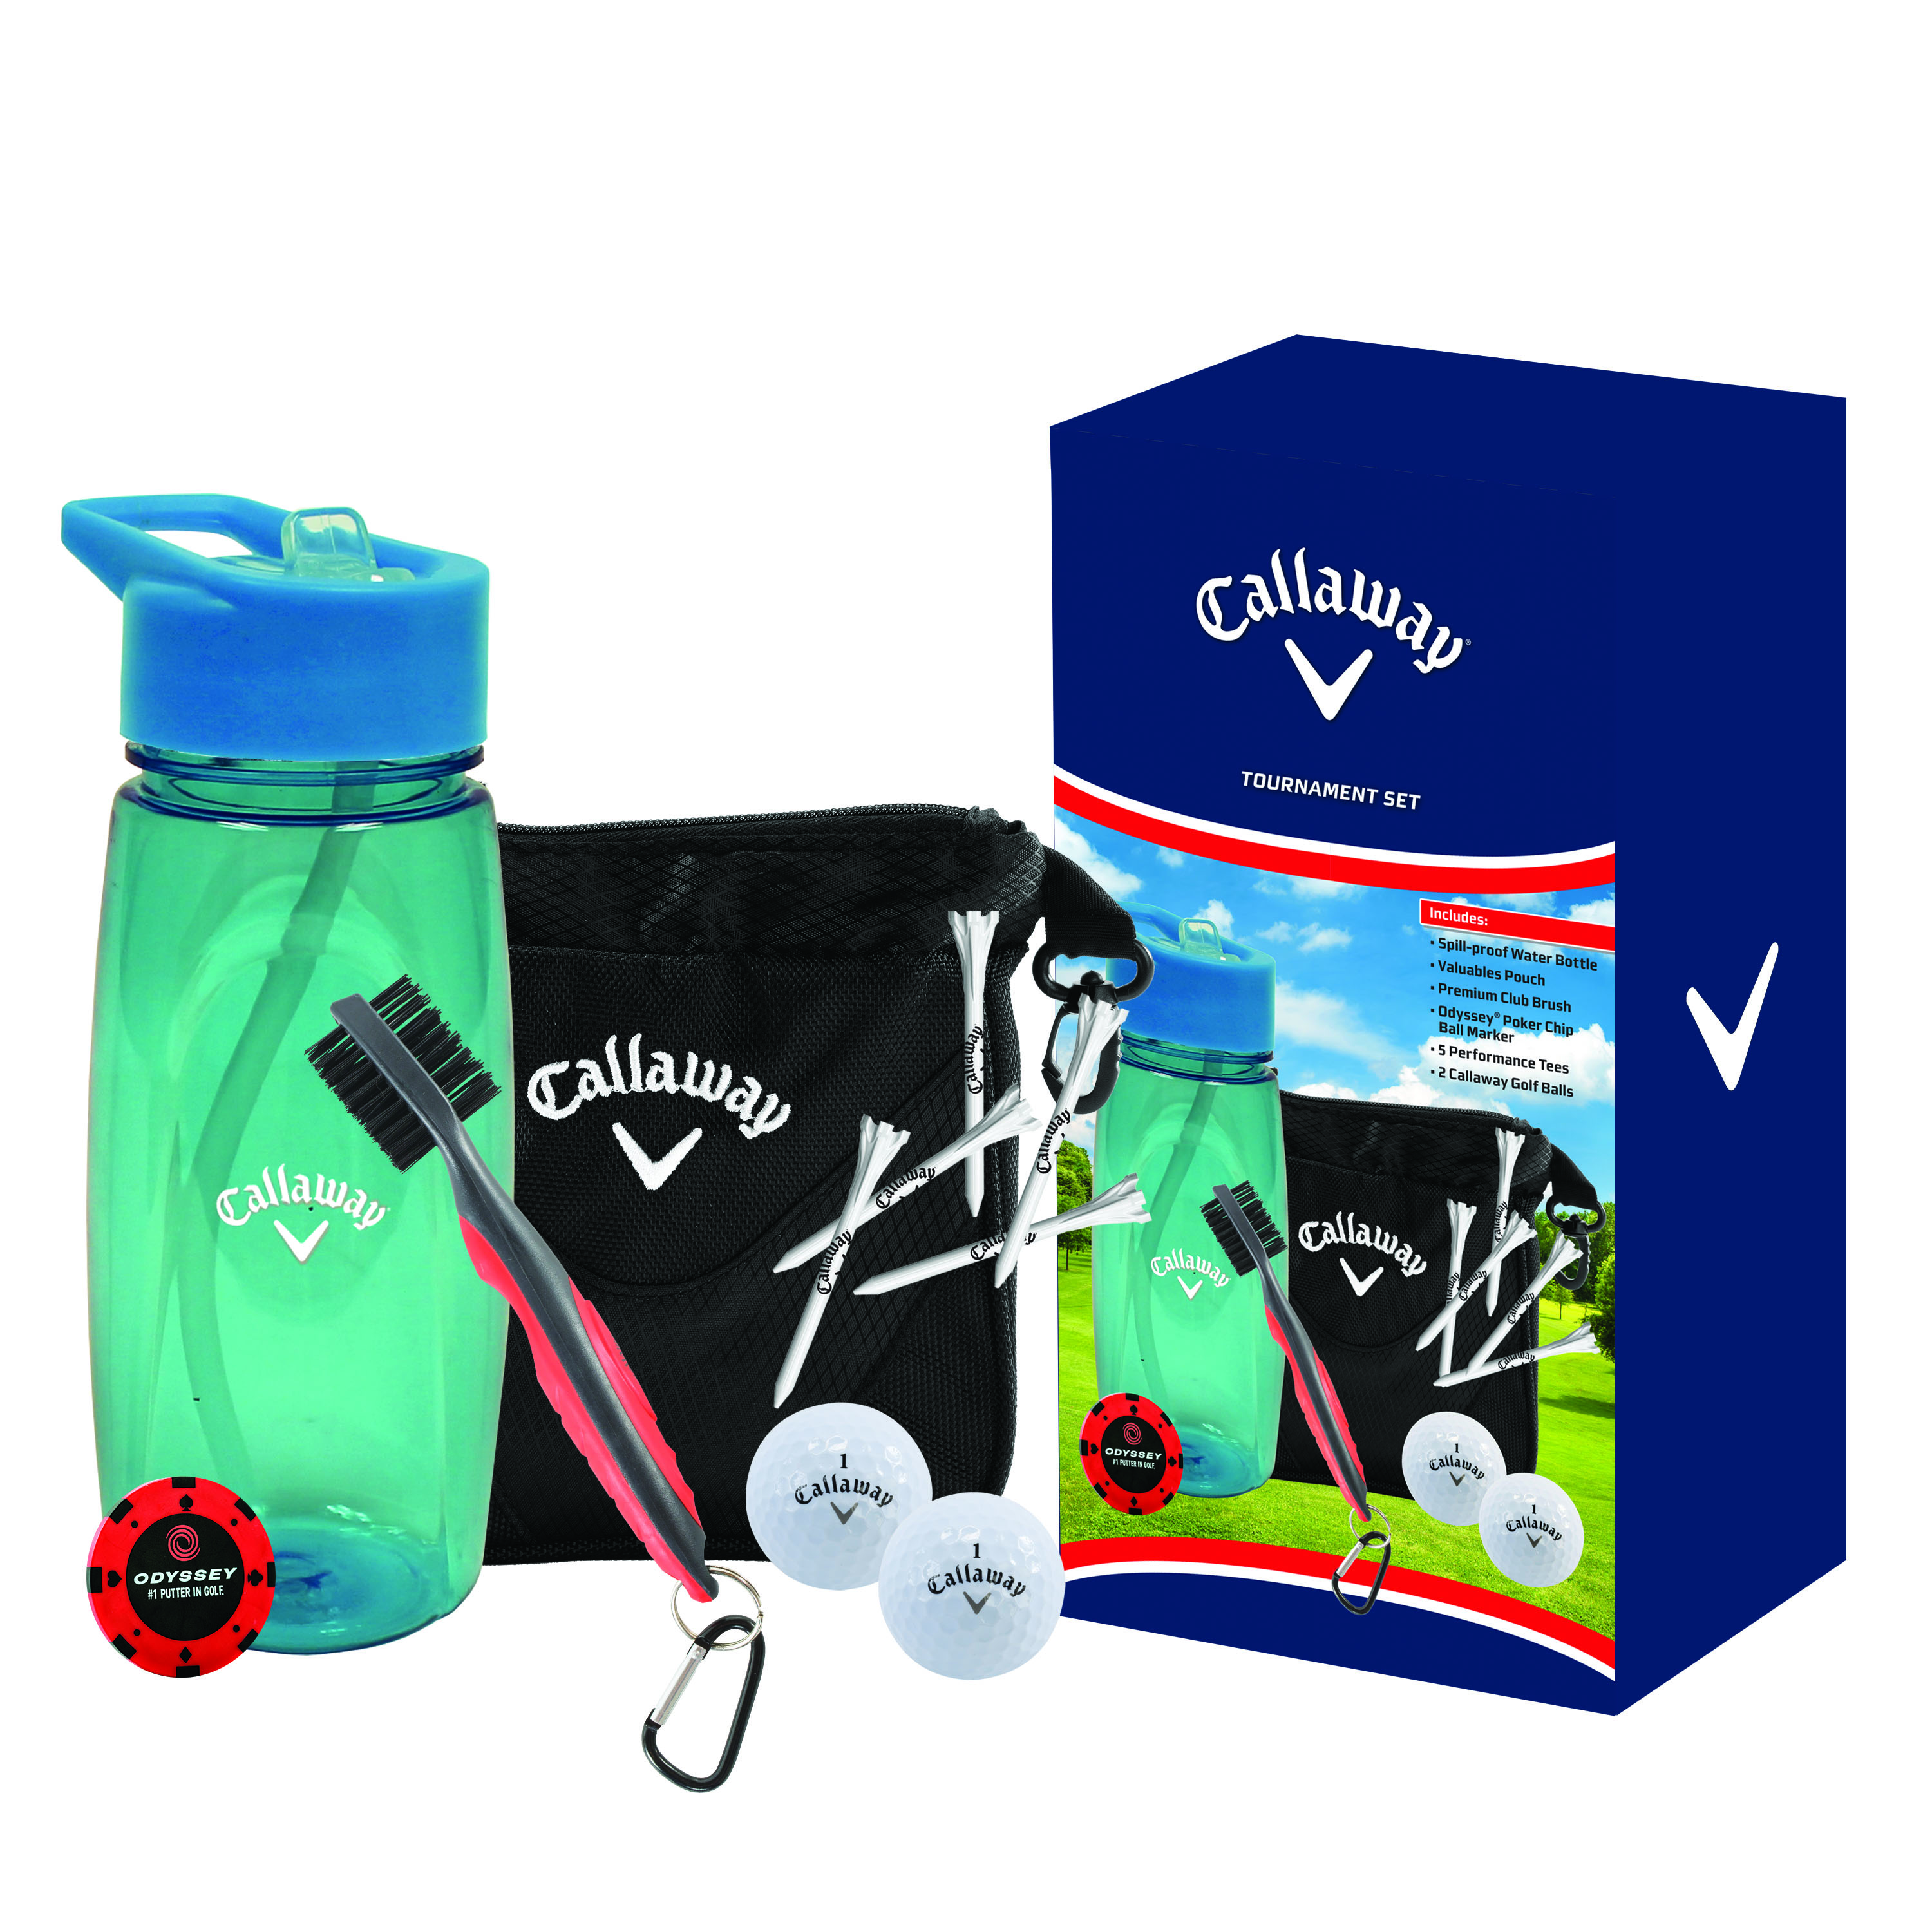 Starter Gift Set by Callaway Golf The Callaway Starter Set is a great gift for any avid golfer and will serve as the perfect tee prize for any charity golf outing or event. The Starter Set includes a variety of useful and popular on-course golf.